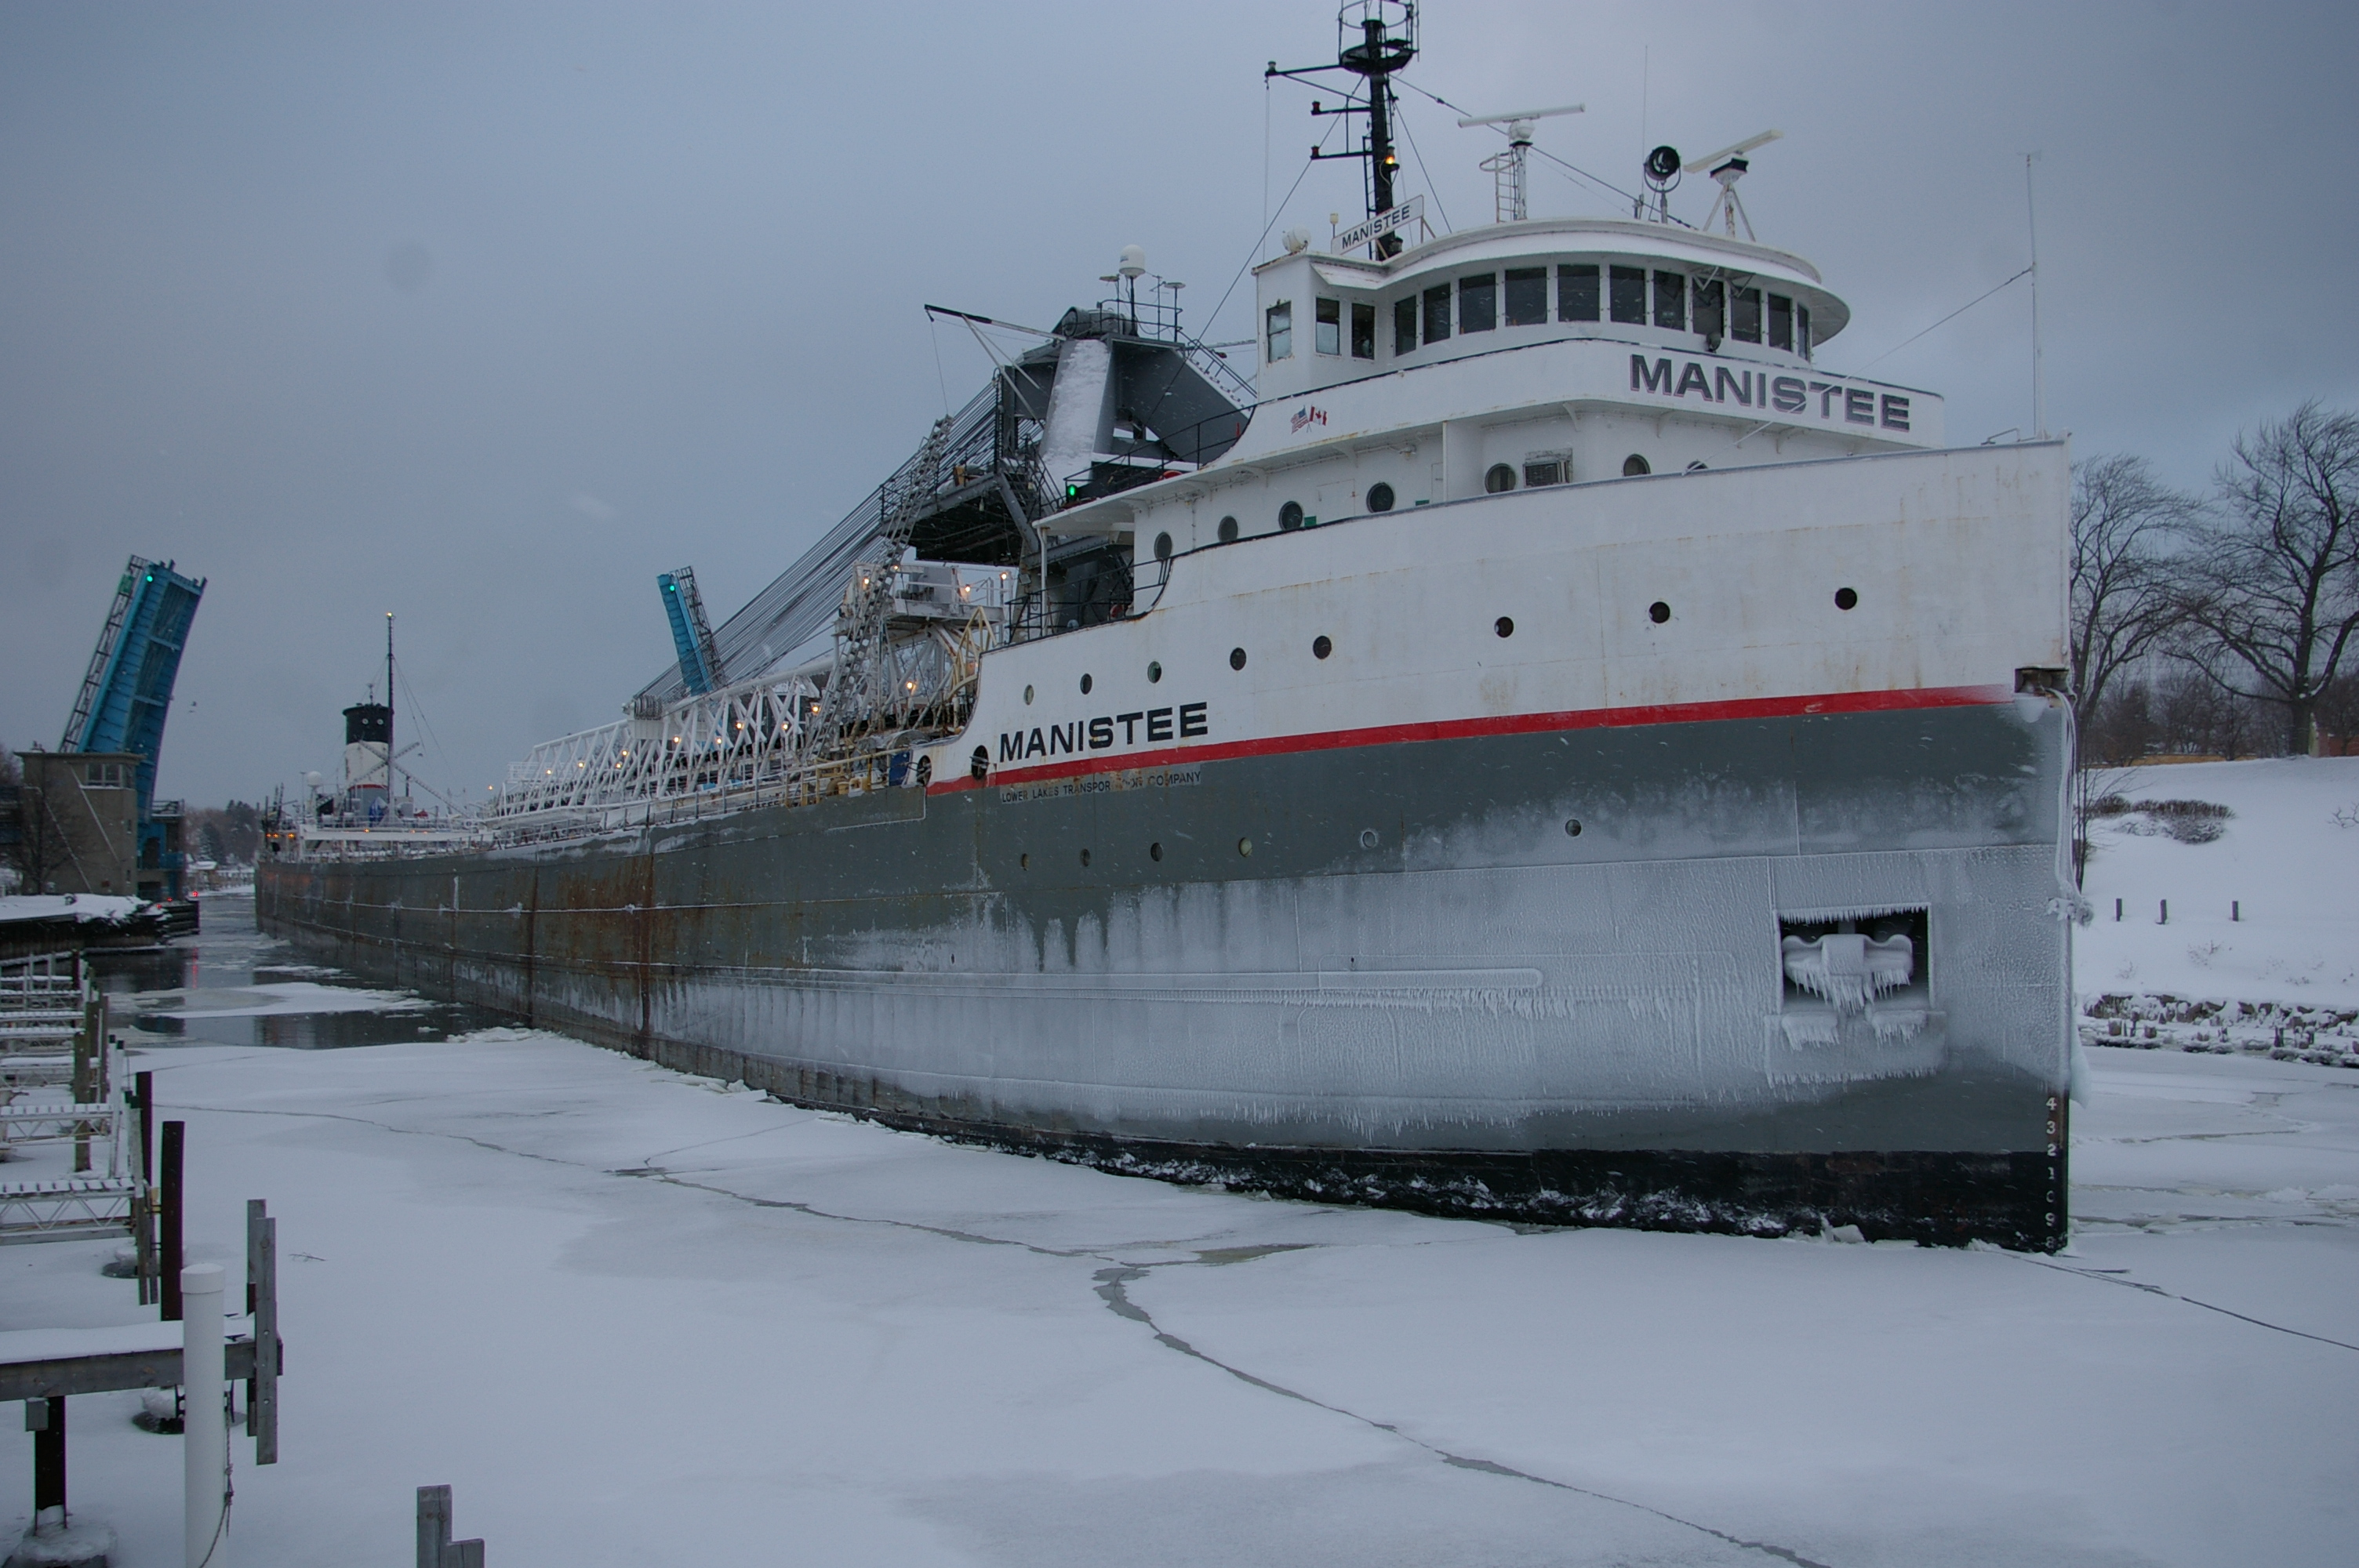 Great Lakes Freighter Manistee is navigating the frozen water in the Manistee River Channel in Winter